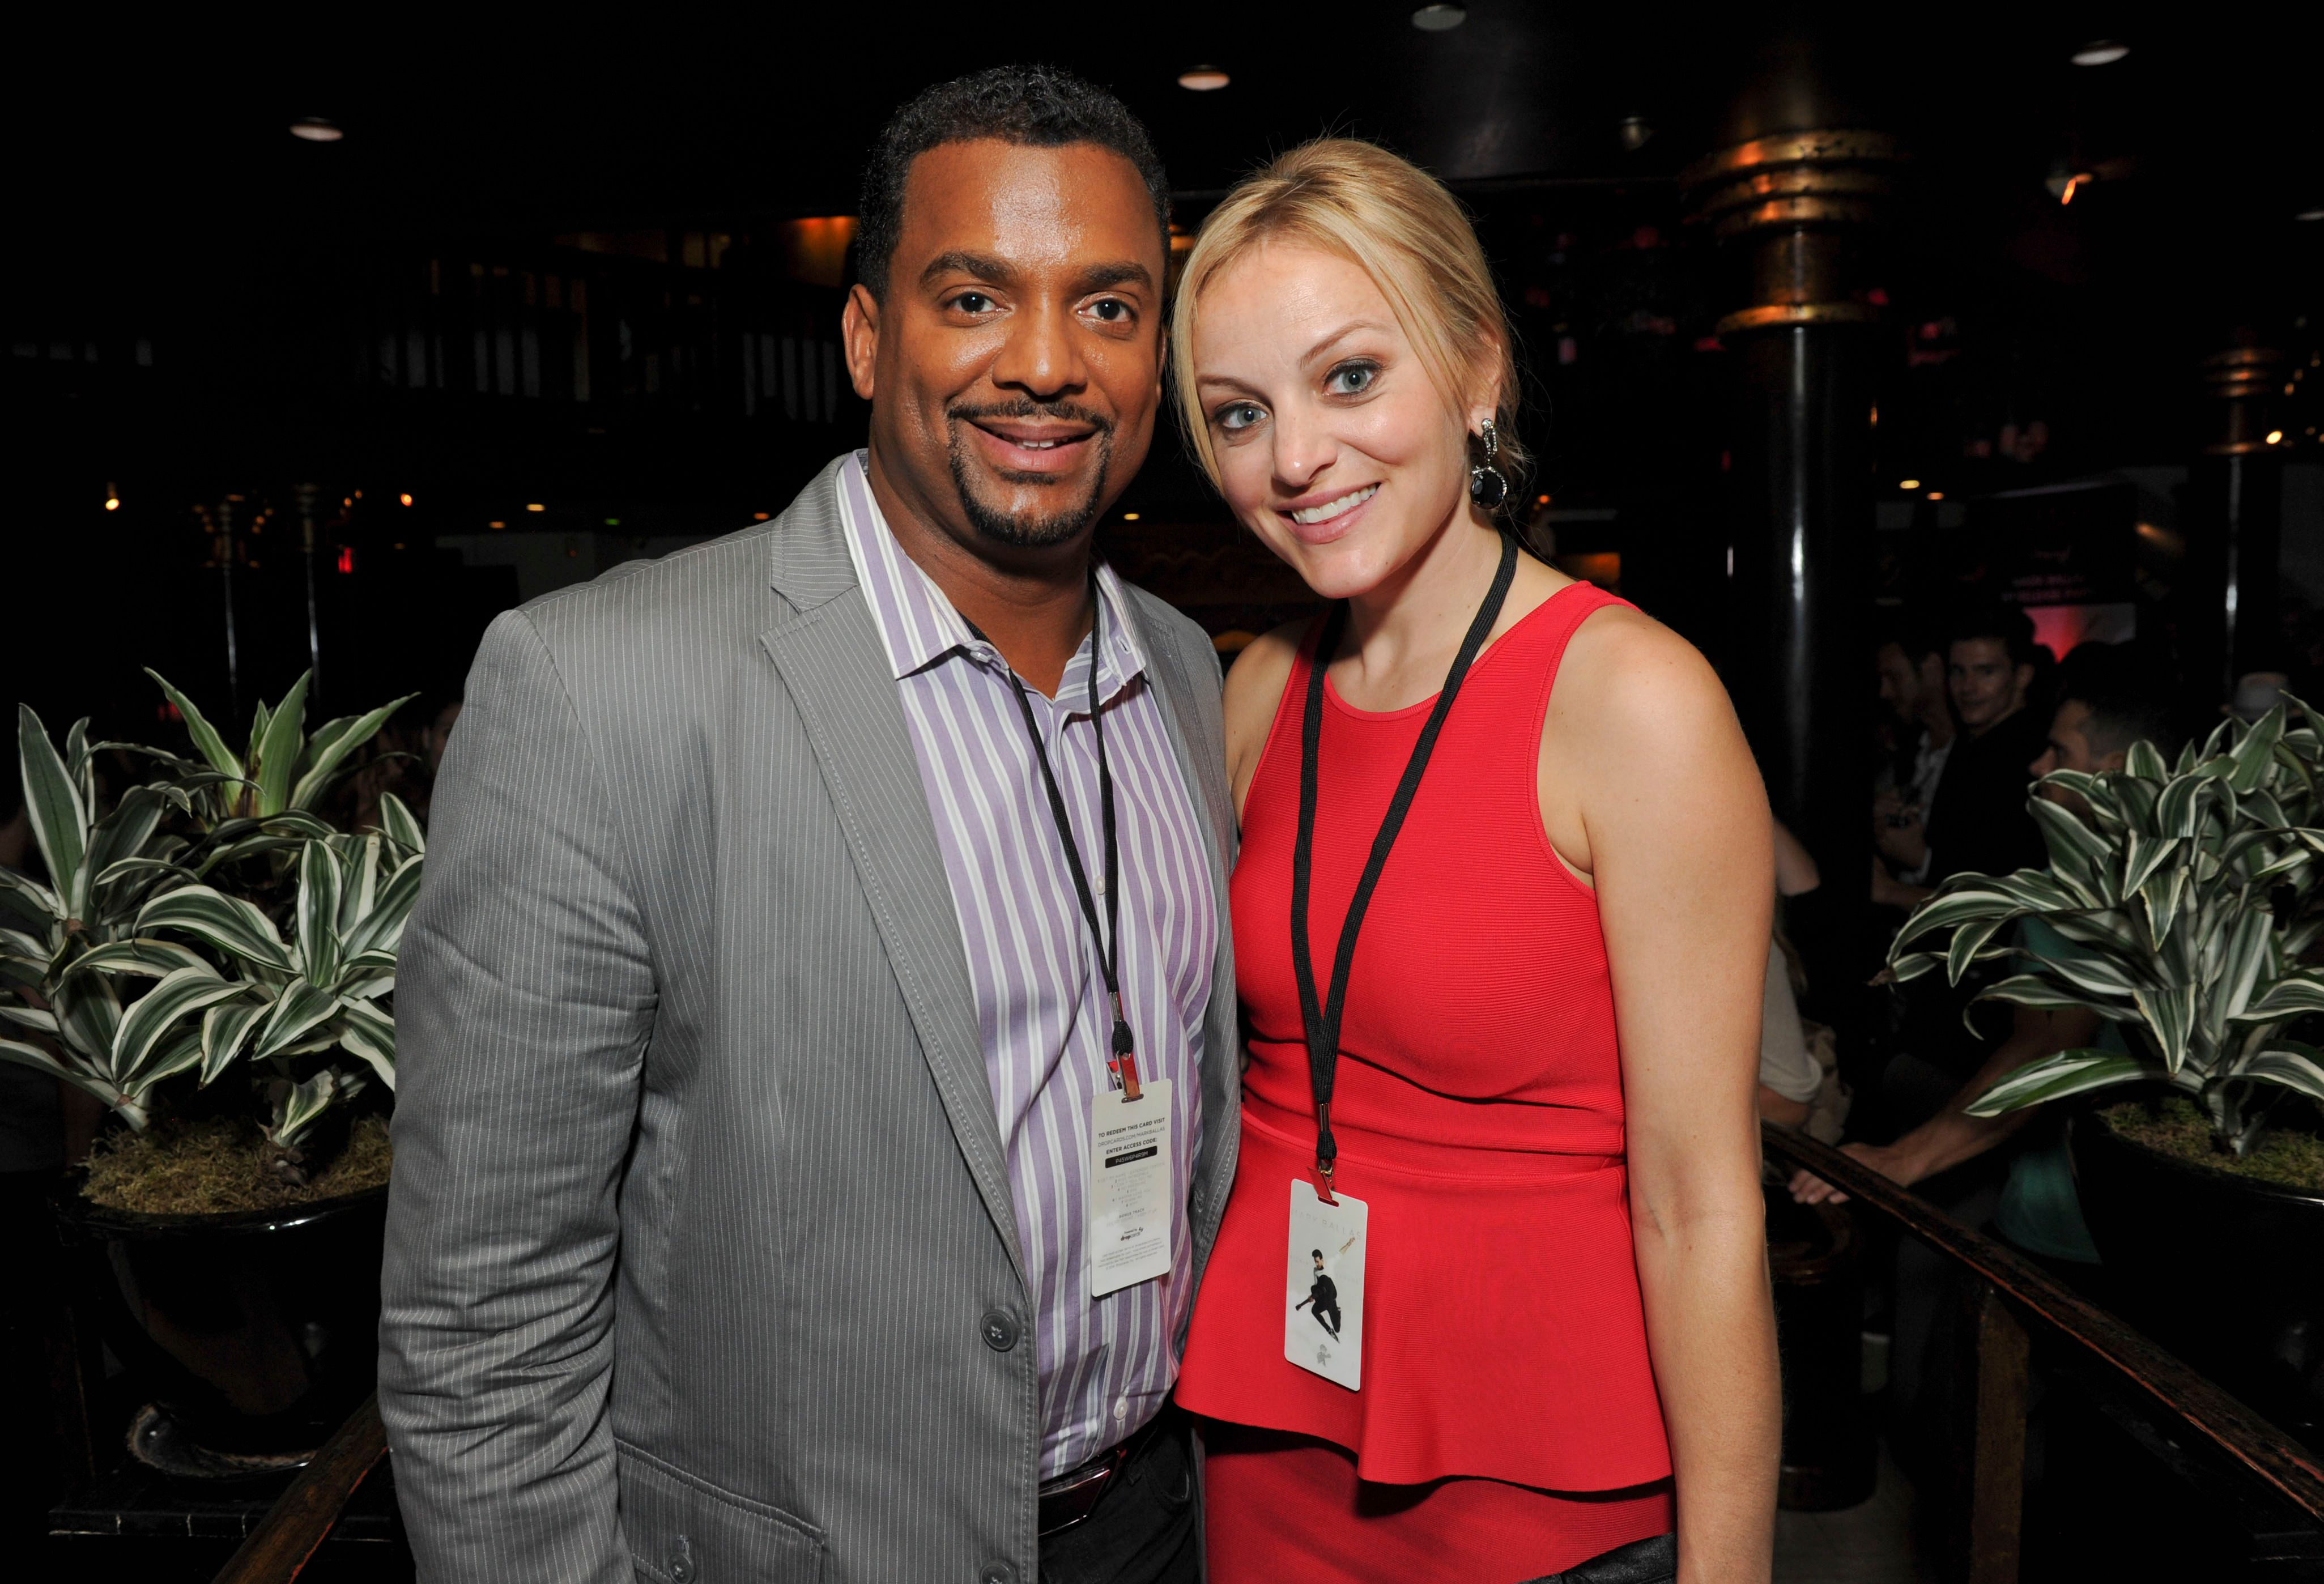 """Alfonso Ribeiro and his wife attending Mark Ballas Debuts EP """"Kicking Clouds"""" on September 16, 2014.   Photo: Getty Images"""